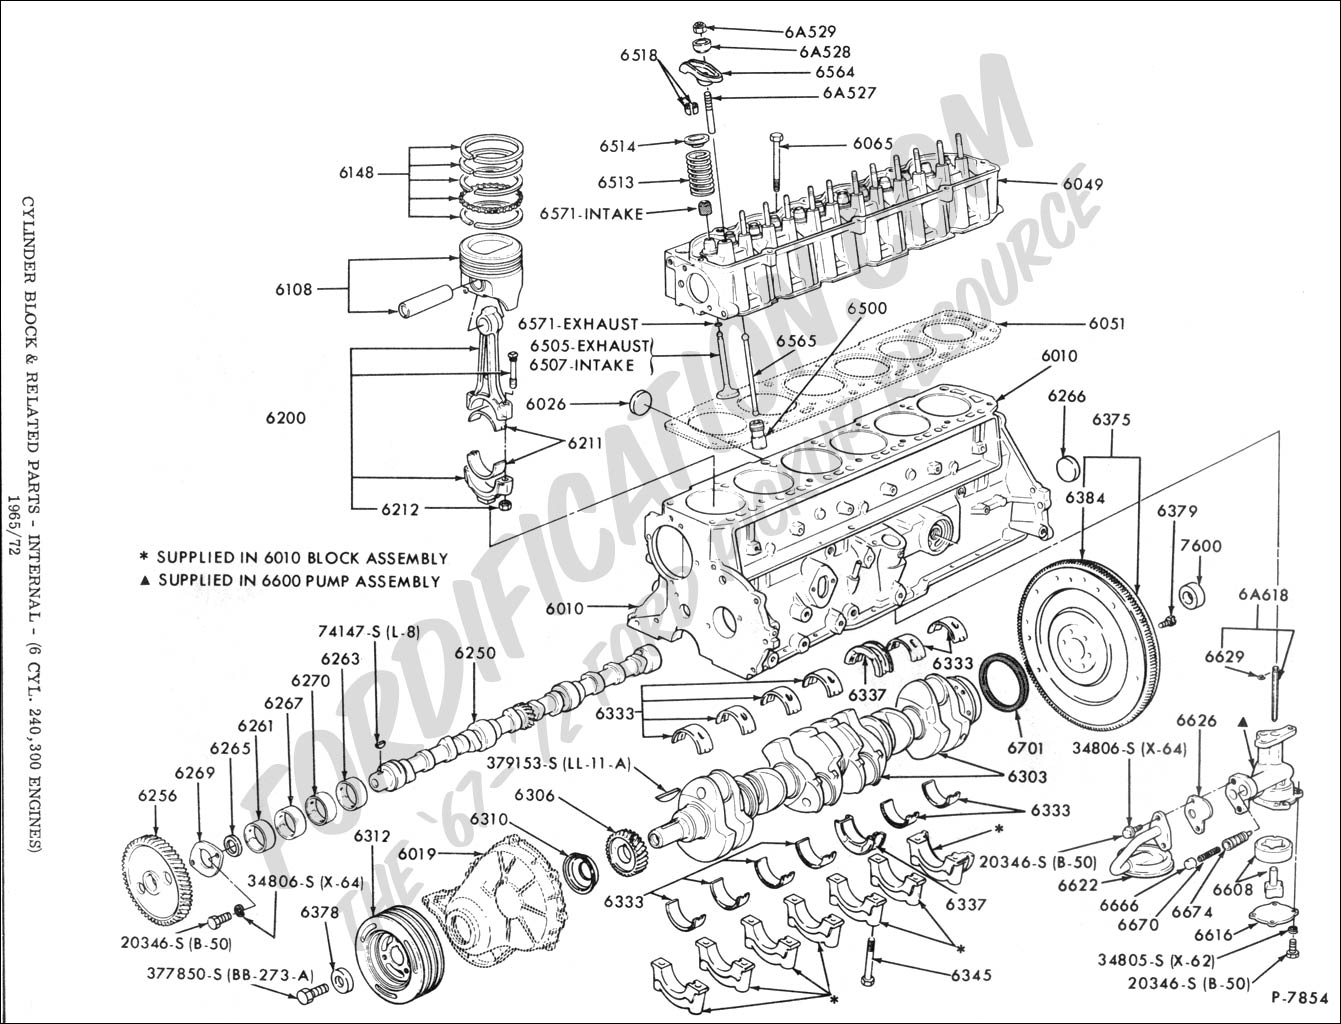 2012 Chevy Traverse Engine Diagram, 2012, Free Engine